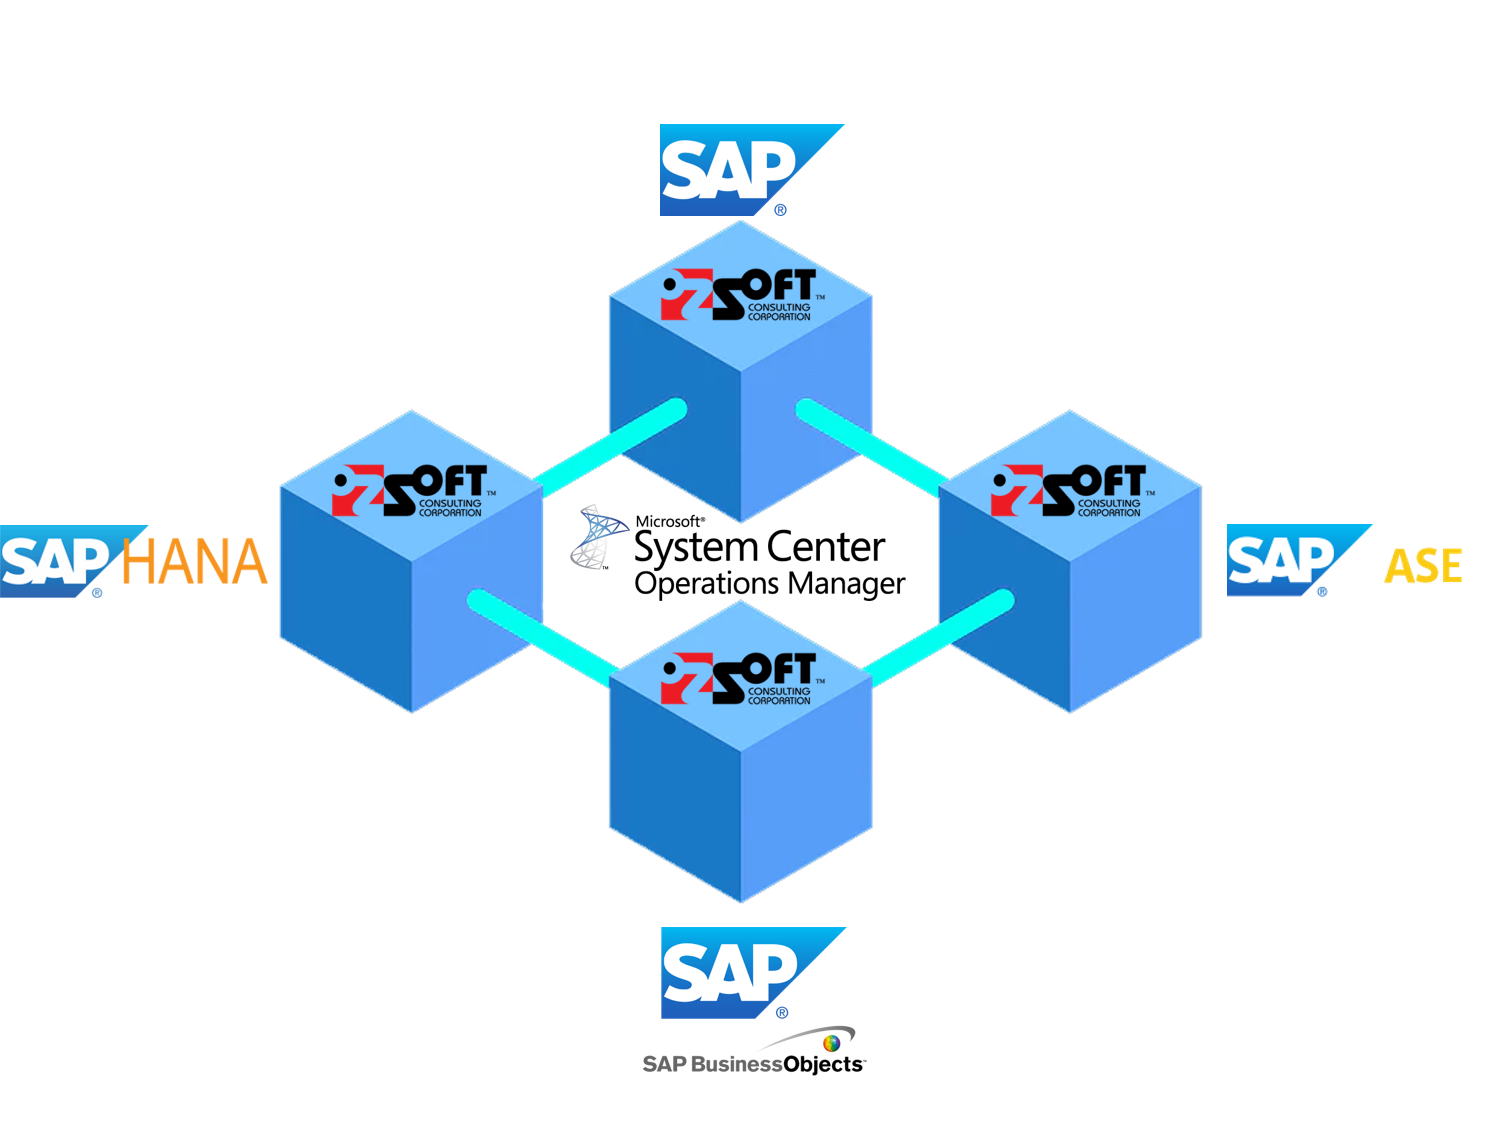 8e3d9364 ozsoft sap managementpacks for scom